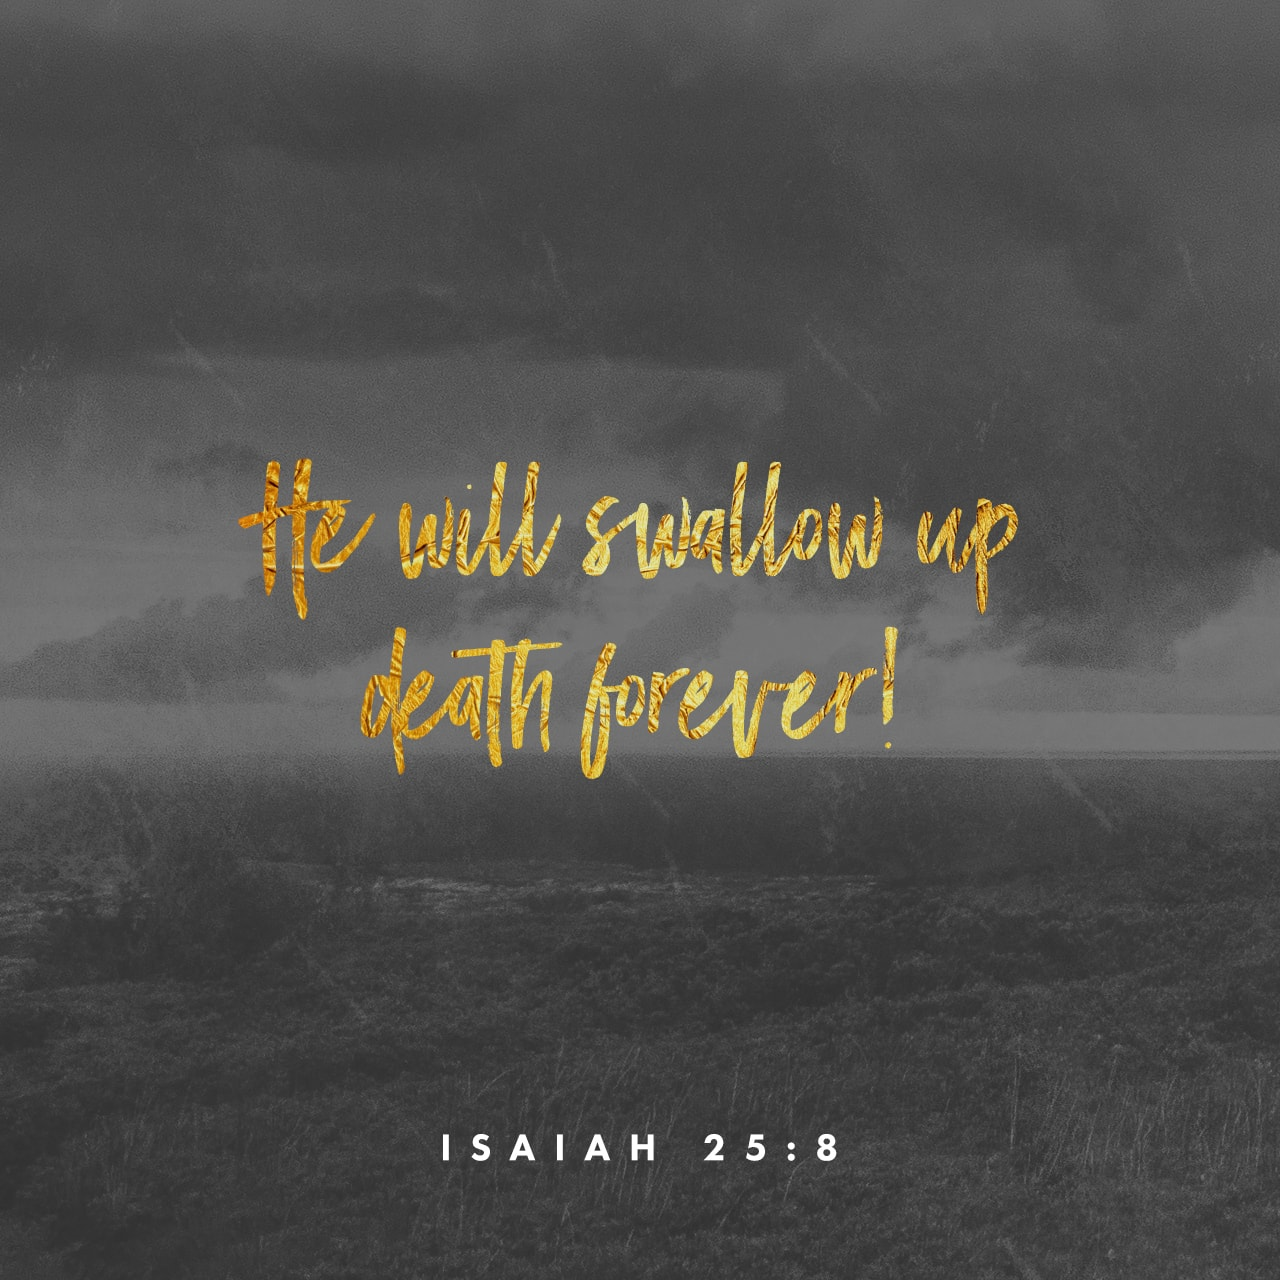 Verse Image: Isaiah 25:8, New Living Translation